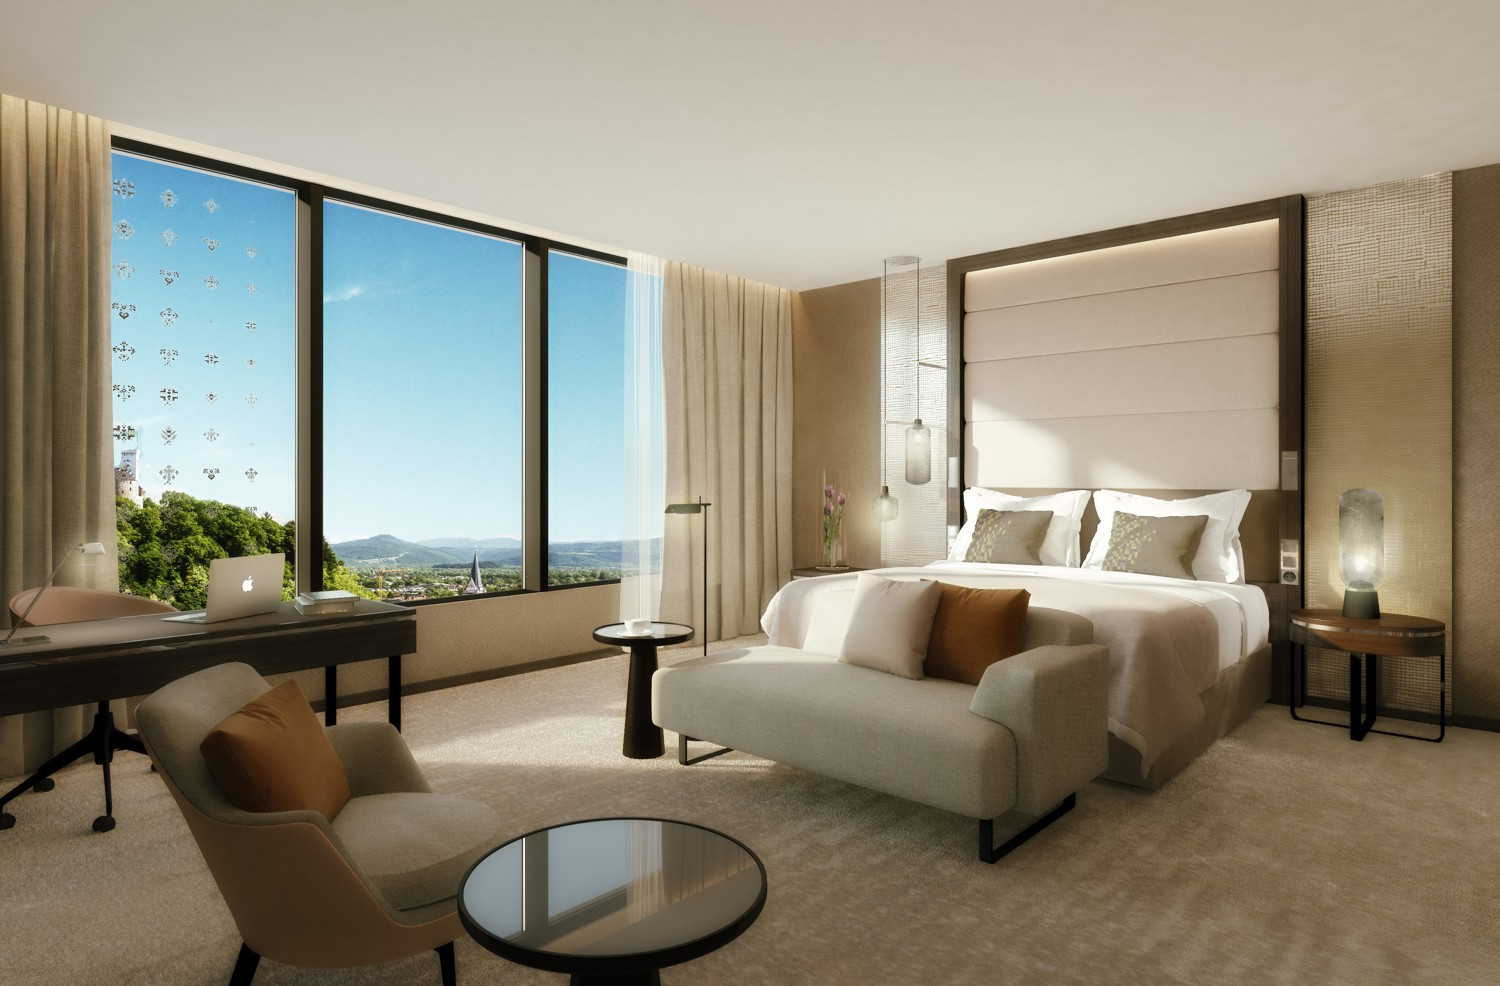 Opening In Mid August 2017 The 165 Room Property Will Operate Under A Management Agreement With IHG Representing Continuation Of Long Term